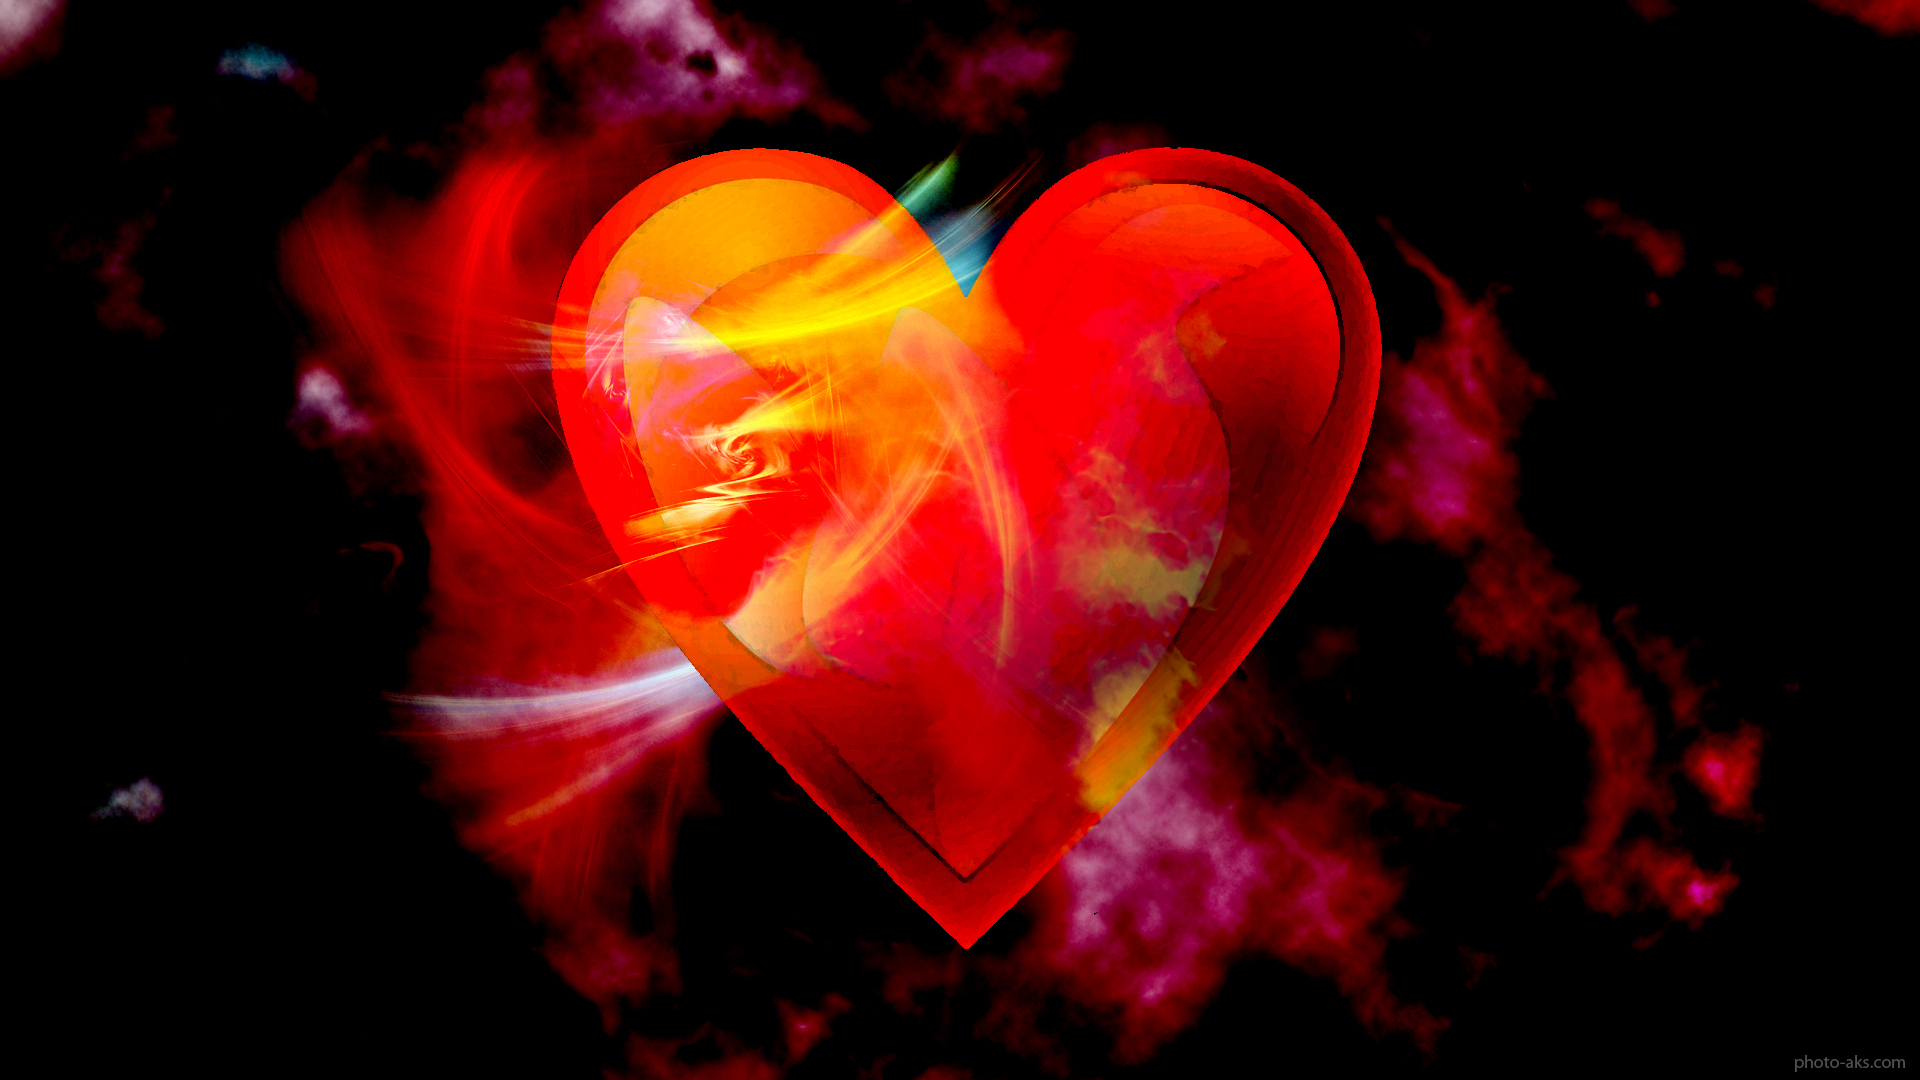 Love Wallpapers Moving : ??? ????? ??? ???? ??????? love abstract heart wallpaper